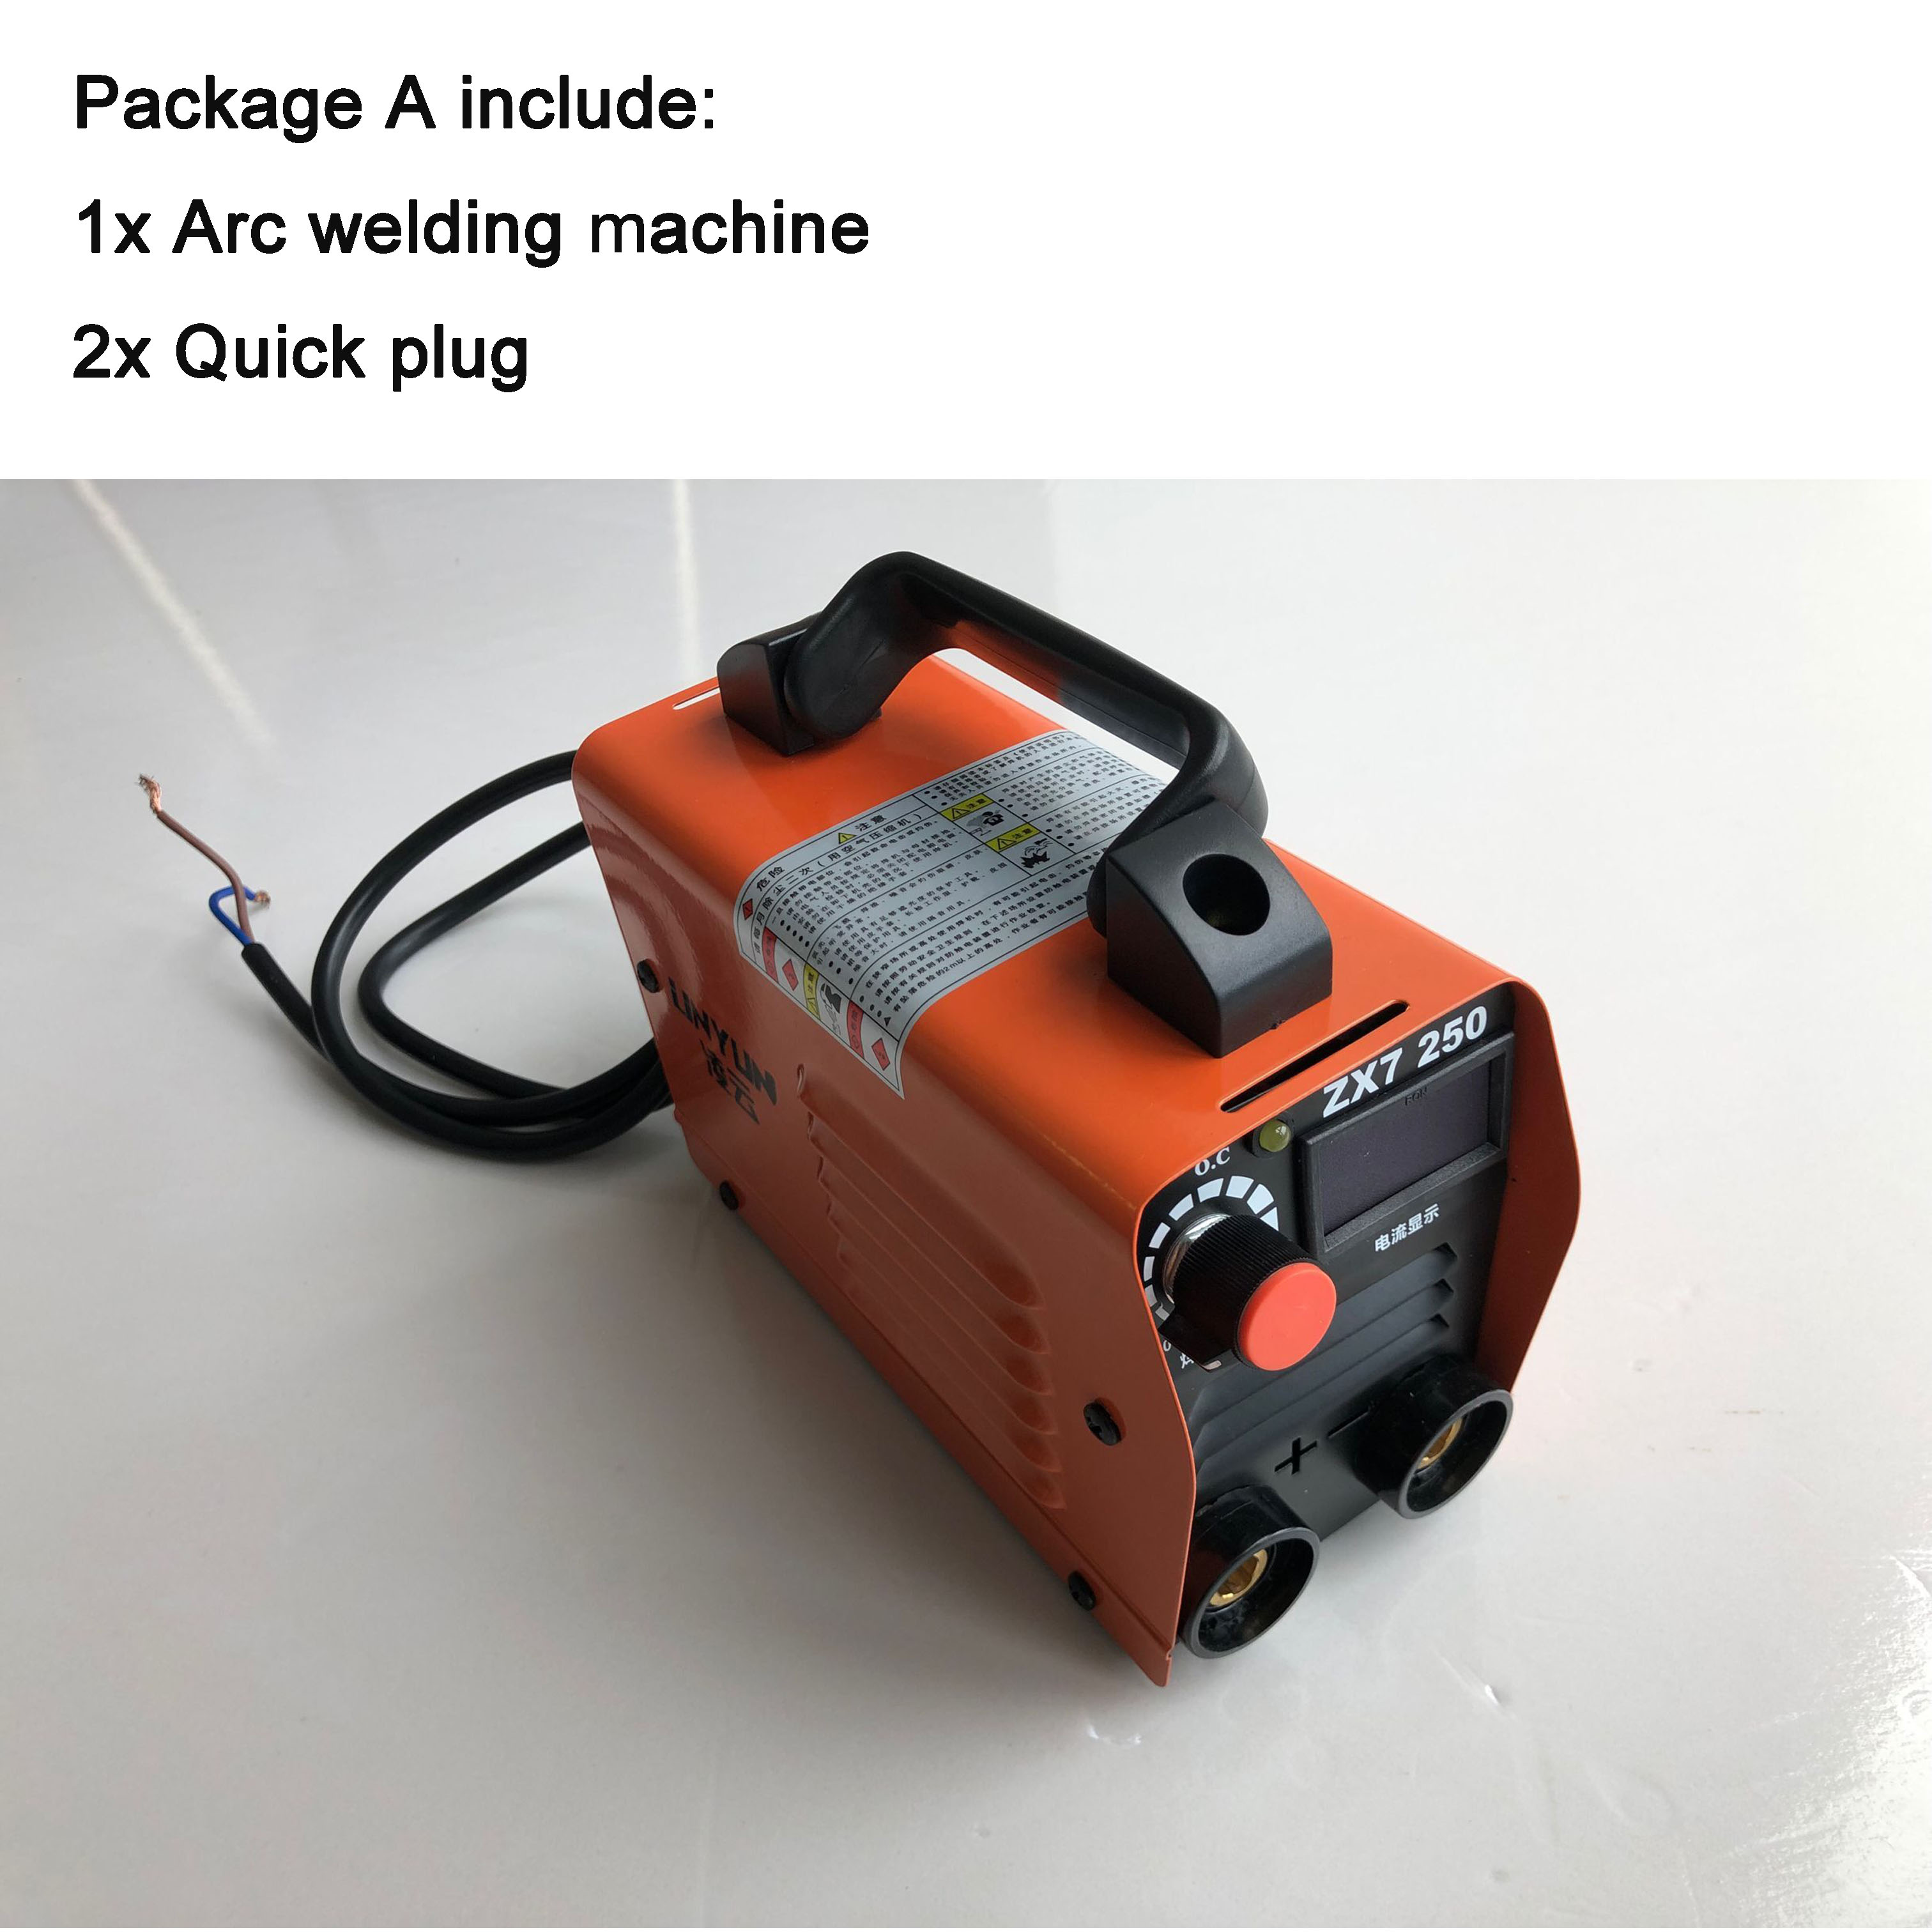 RU Delivery 220V Compact Mini MMA Welder Inverter ARC Welding Machine Stick Welder